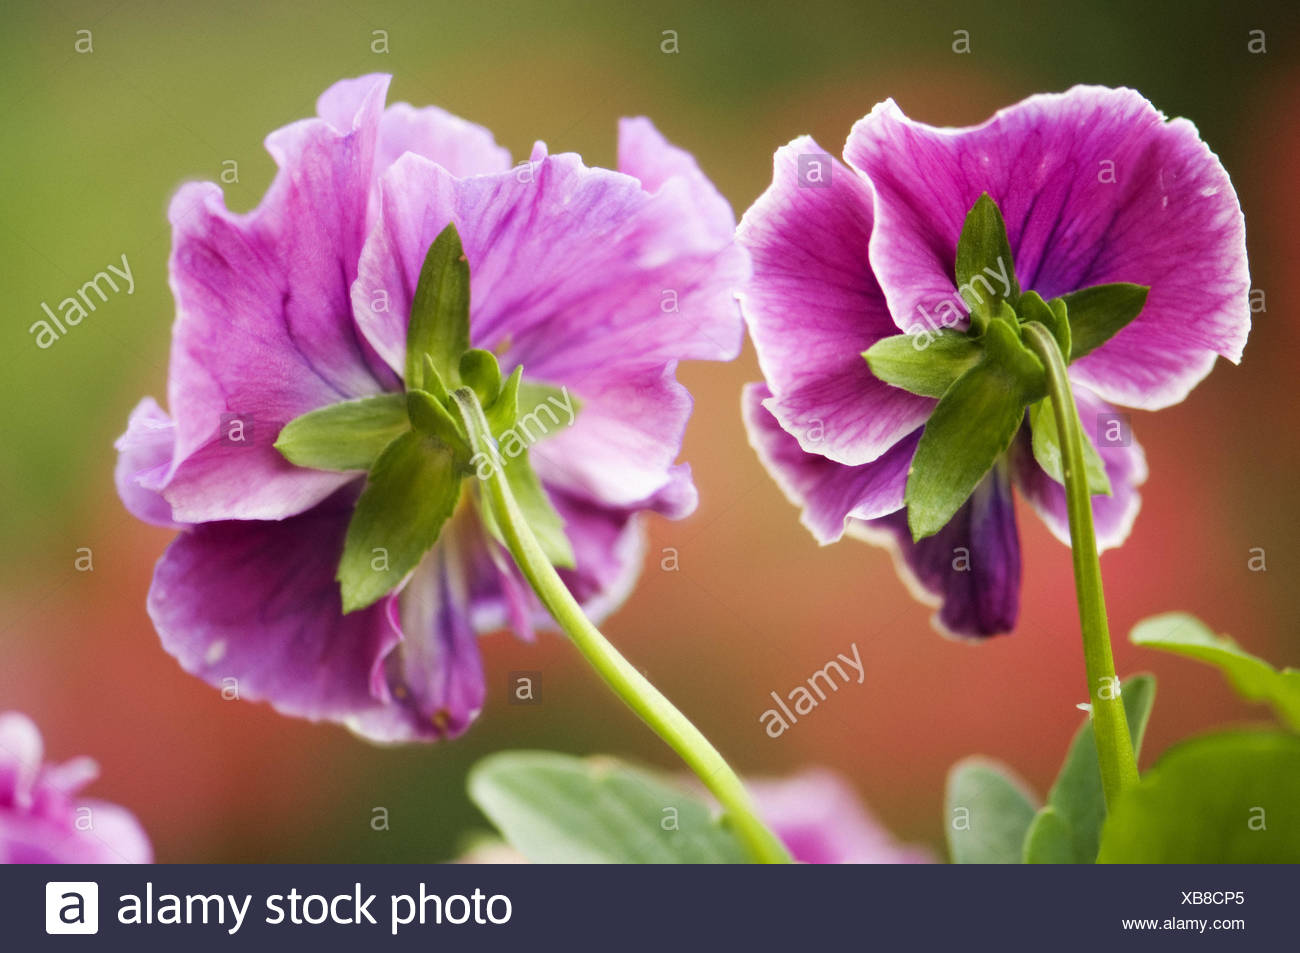 Two dark pink pansy flowers viola x wittrockiana stock photo two dark pink pansy flowers viola x wittrockiana mightylinksfo